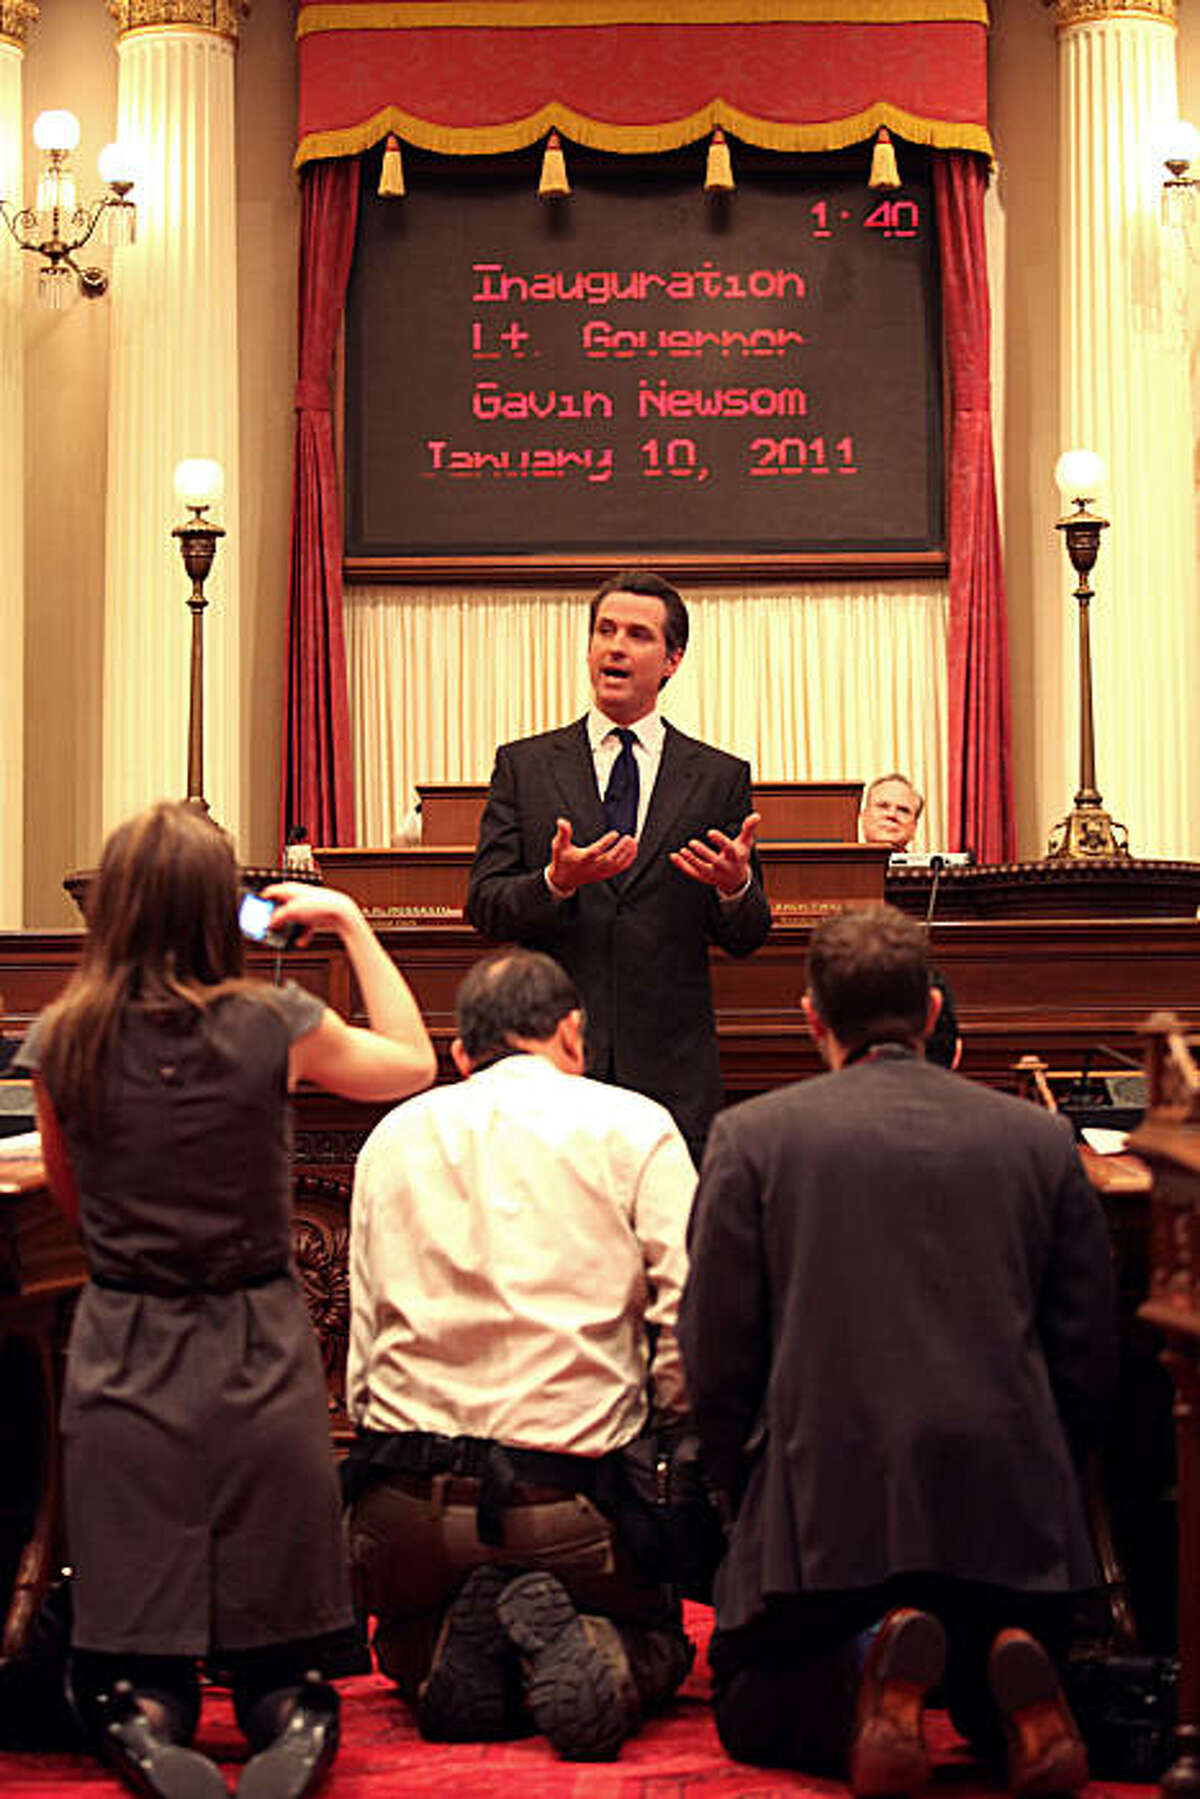 Mayor Gavin Newsom speaks after getting sworn in as lieutenant governor by his father, Hon. Judge William Newsom (left) at the state capitol in Sacramento, Calif., on Monday, January 10, 2011.